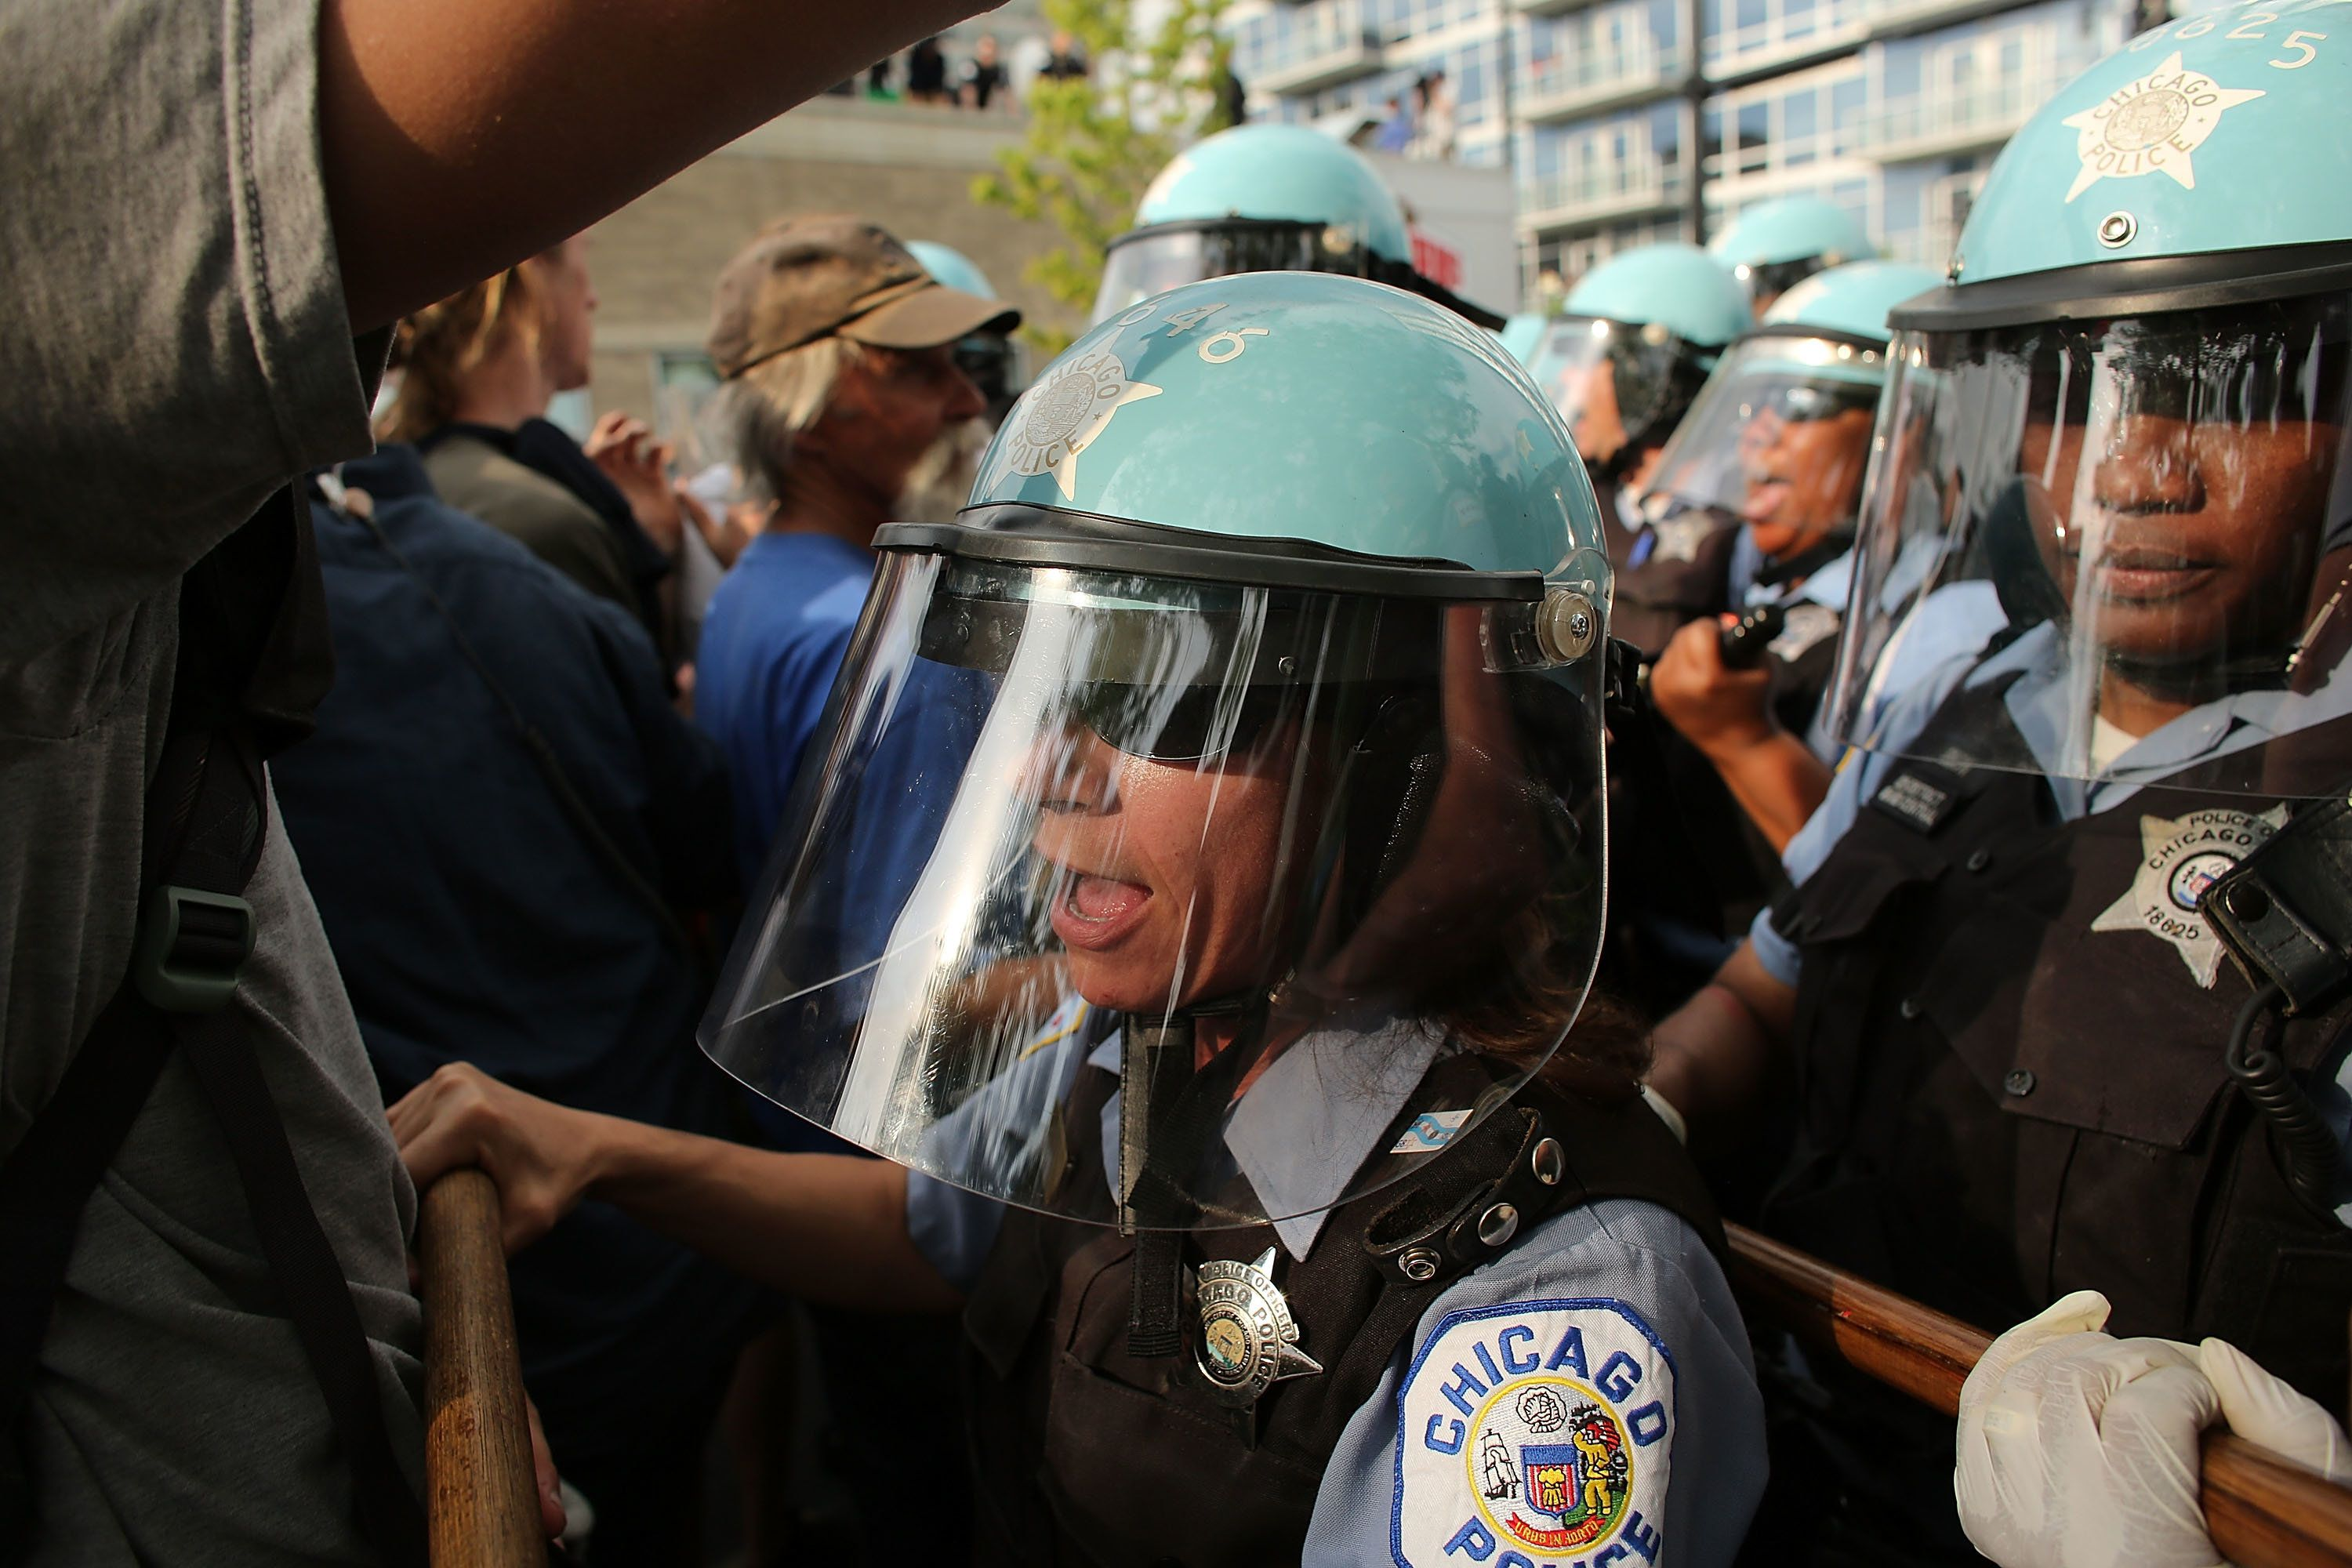 <span>Protesters and Chicago Police confront each other near the NATO conference venue on the first day of the NATO summit on